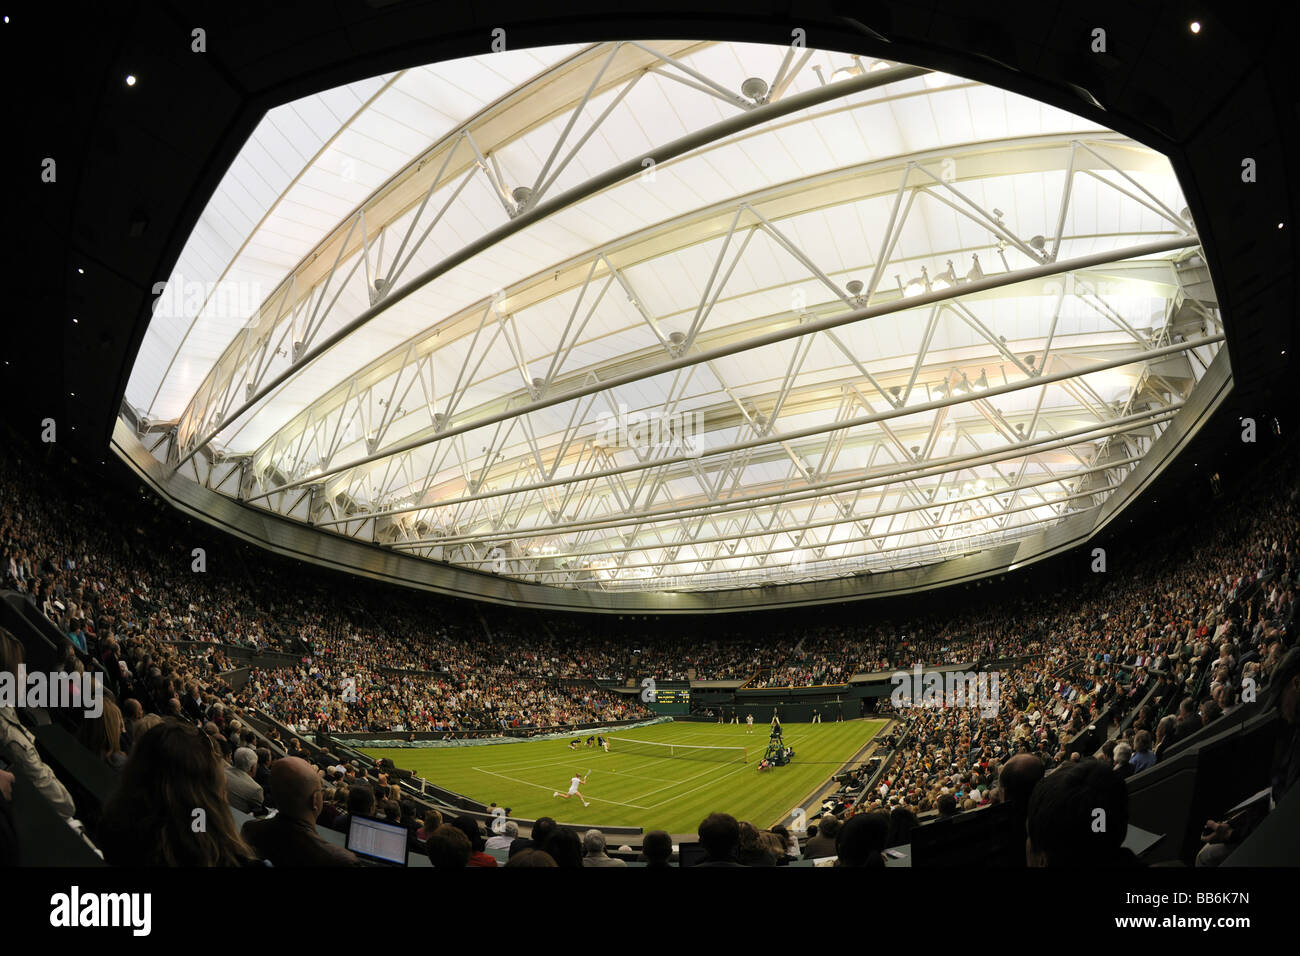 View of play on Centre Court under the new retractable roof during the Wimbledon Centre Court Celebration event. - Stock Image